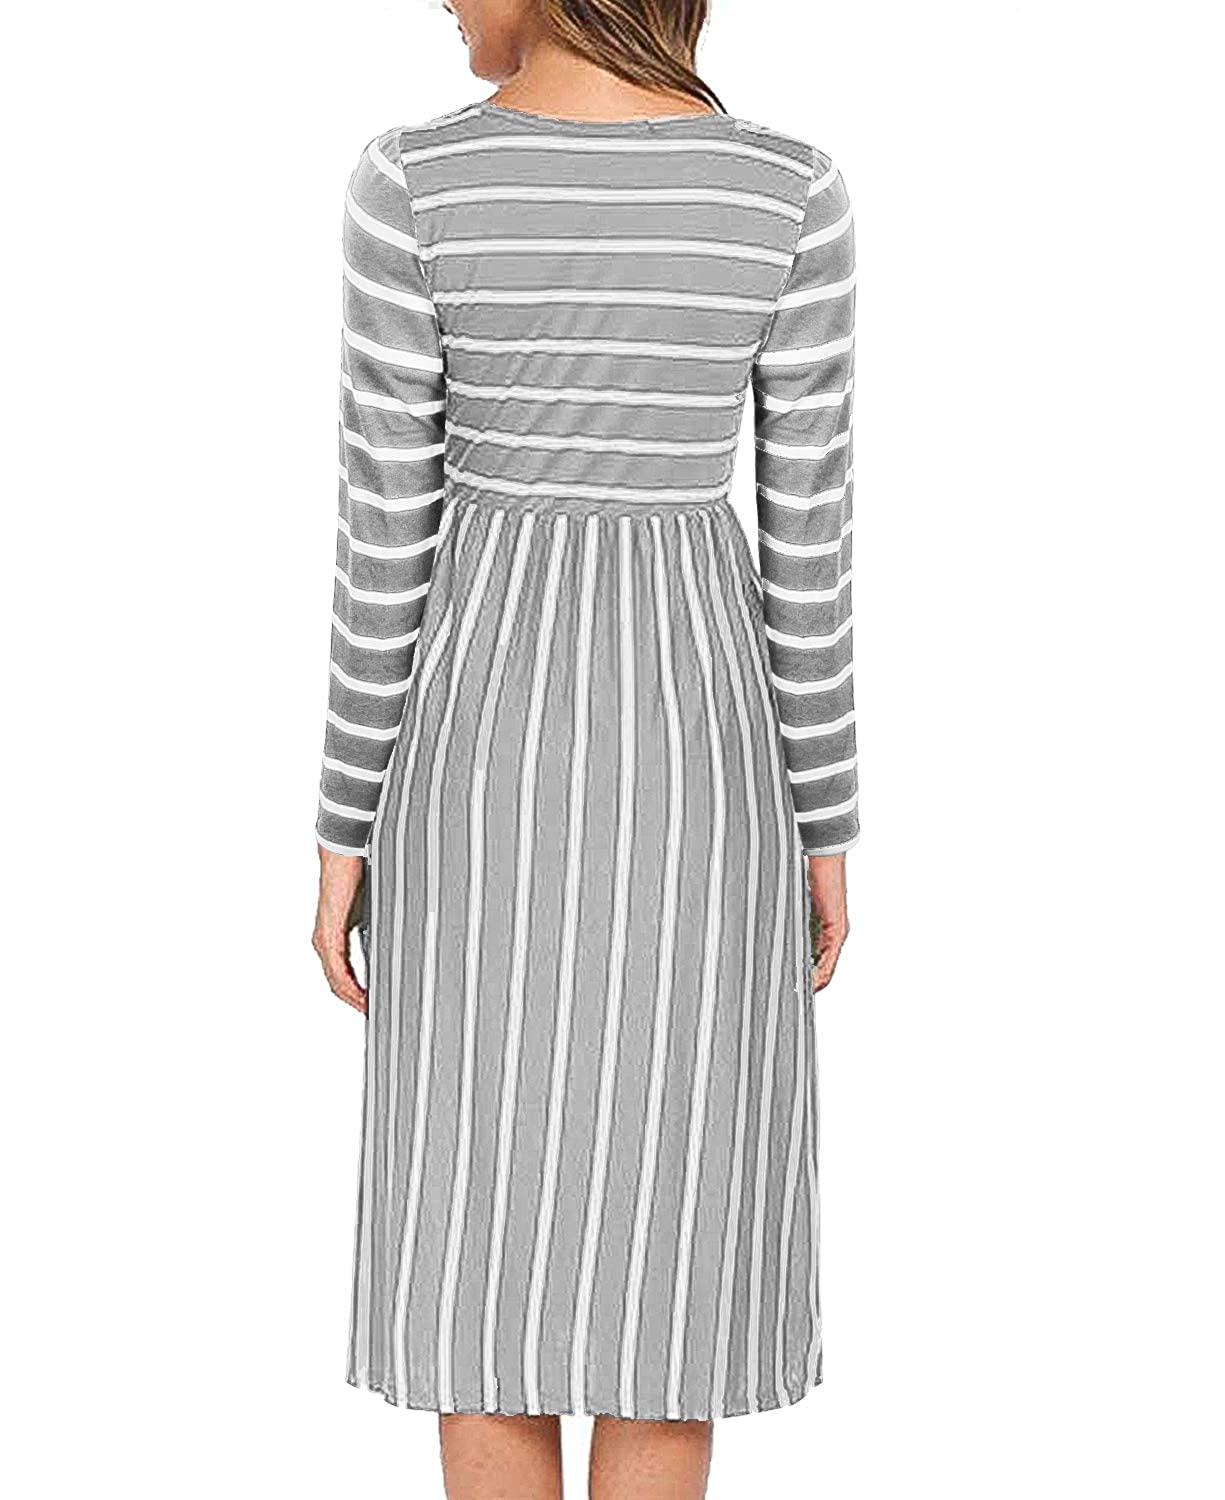 83f5a9eccac4c Hellmei Breastfeeding Tops Latched Mama, Womens Semi Formal Party Leisure  Striped Breast Feeding Dress Scoop Neck Thin Knitting Relaxed Fit Nursing  Clothing ...